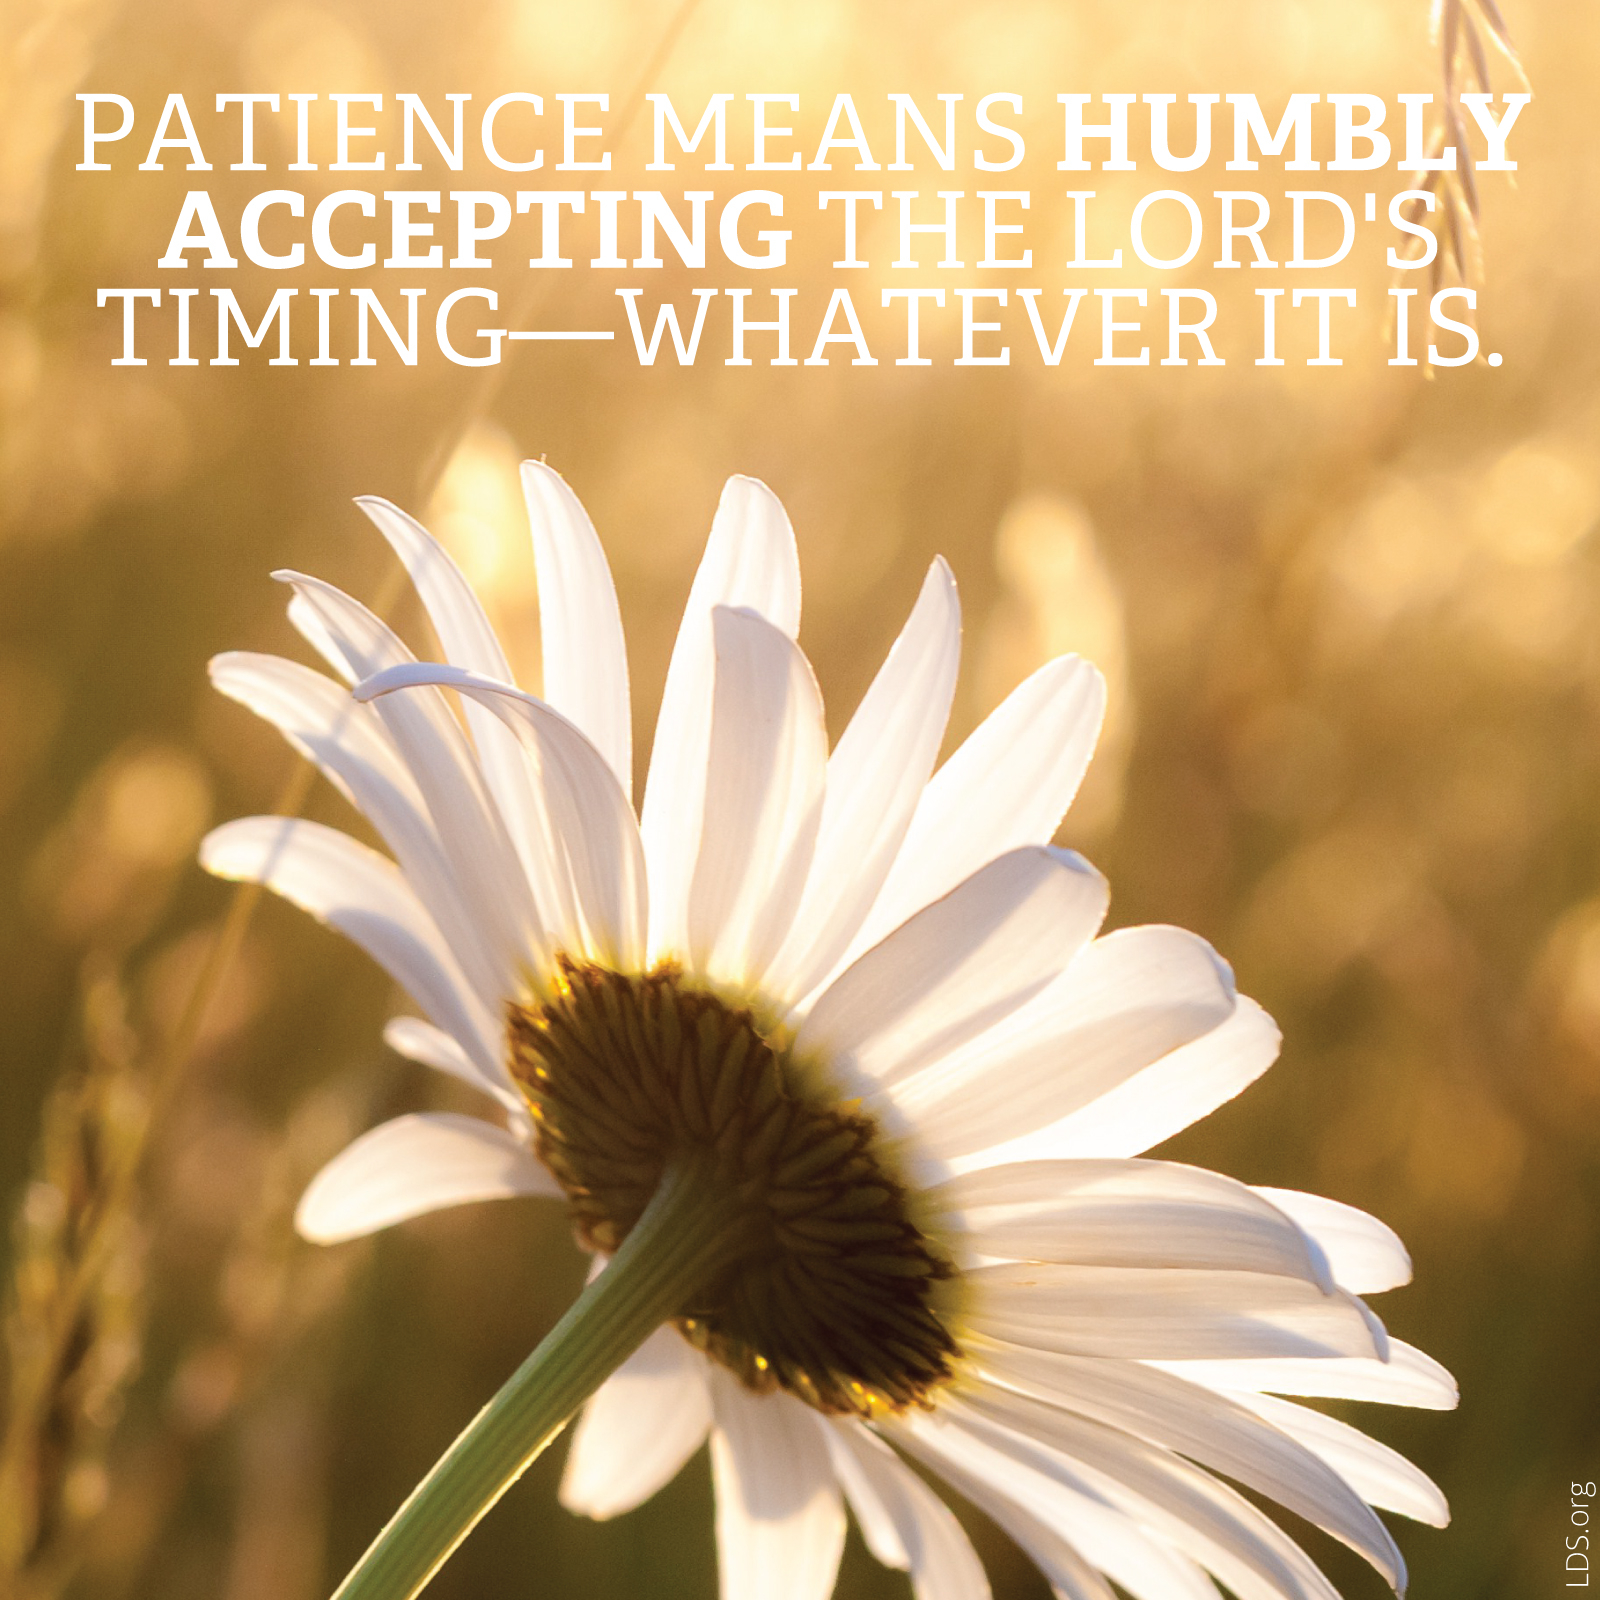 Patience Is Humbly Accepting